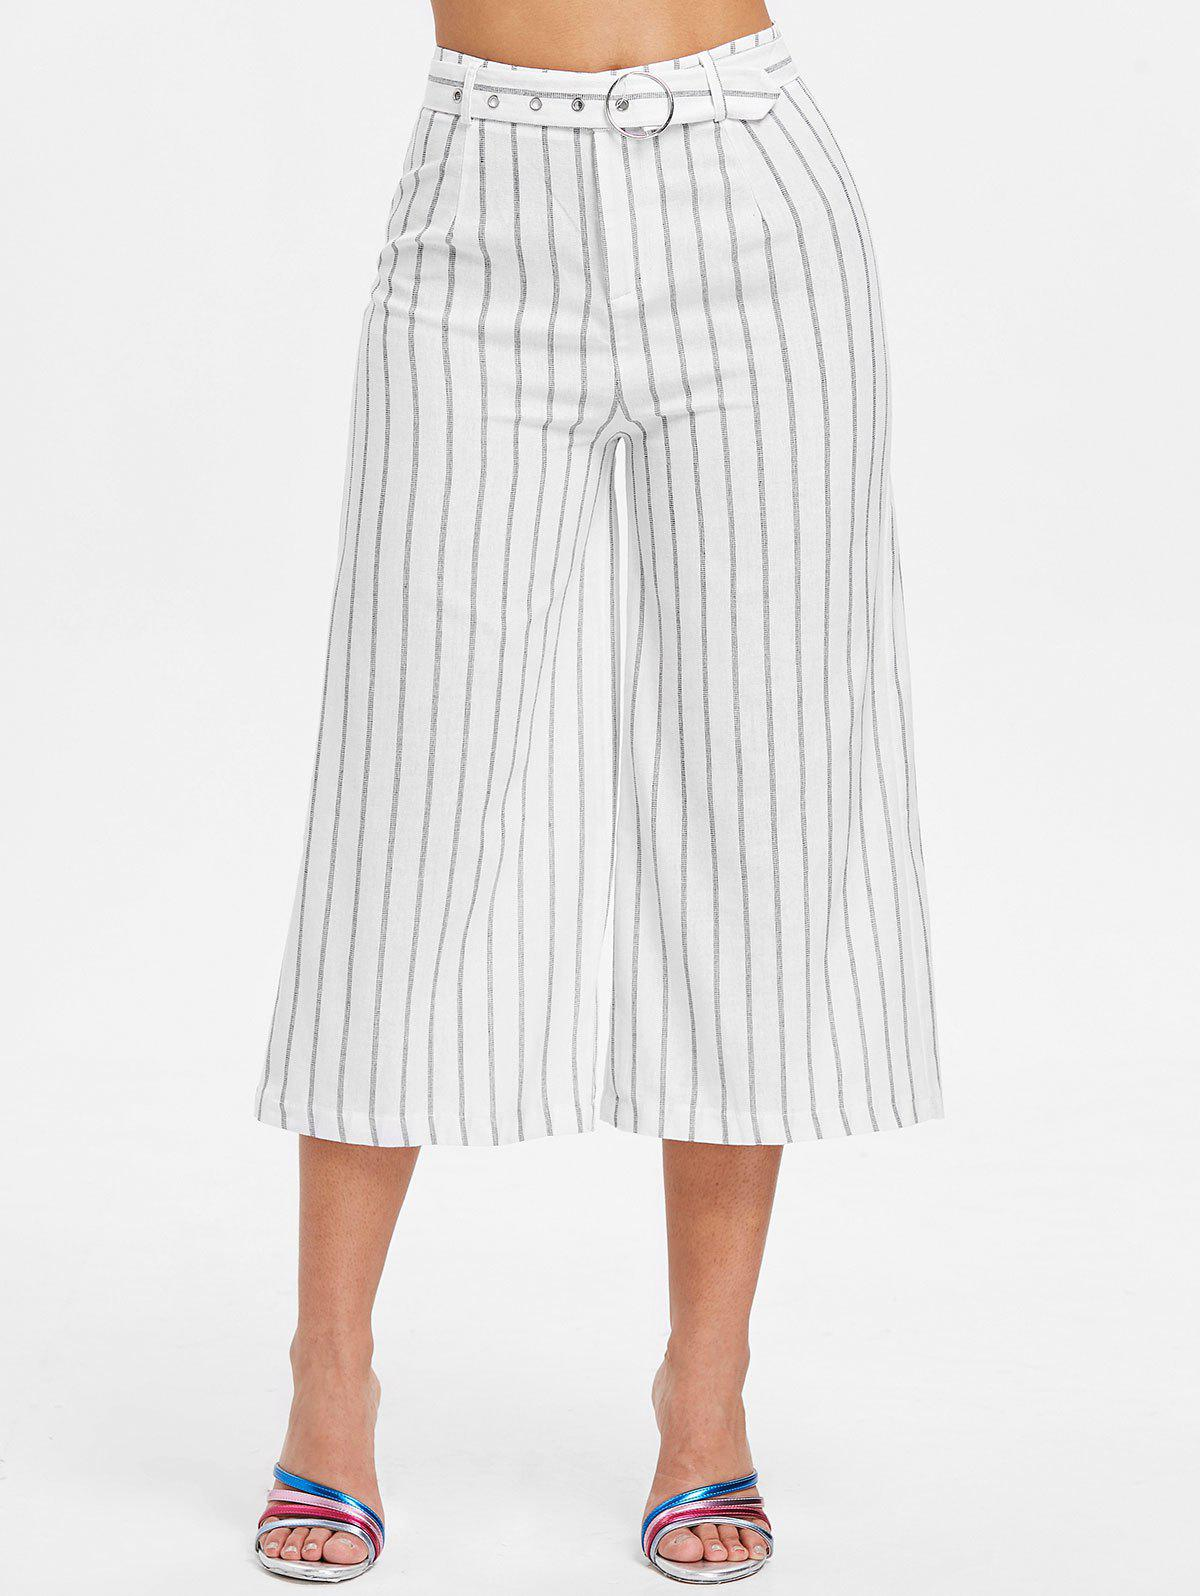 Best High Waist Striped Capri Pants